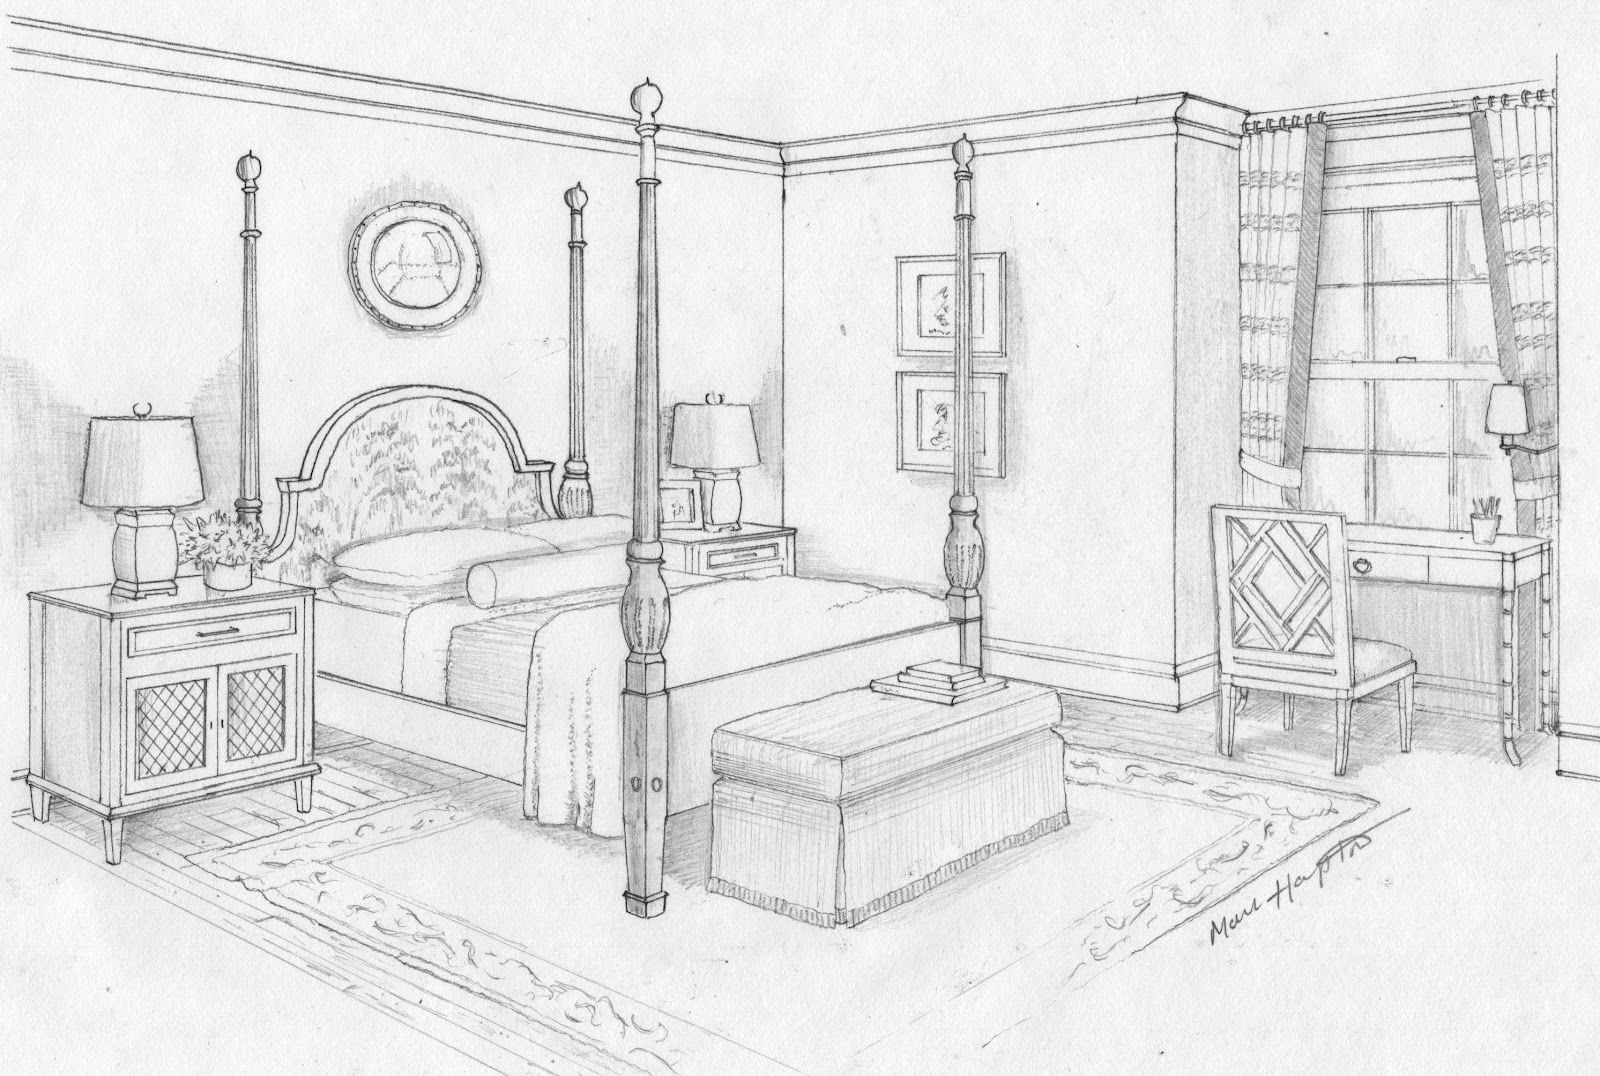 Bedroom drawing for kids - Dream Bedroom Sketch Bedroom Ideas Pictures Dream Bedroom Sketch Bedroom Ideas Pictures Art Pinterest